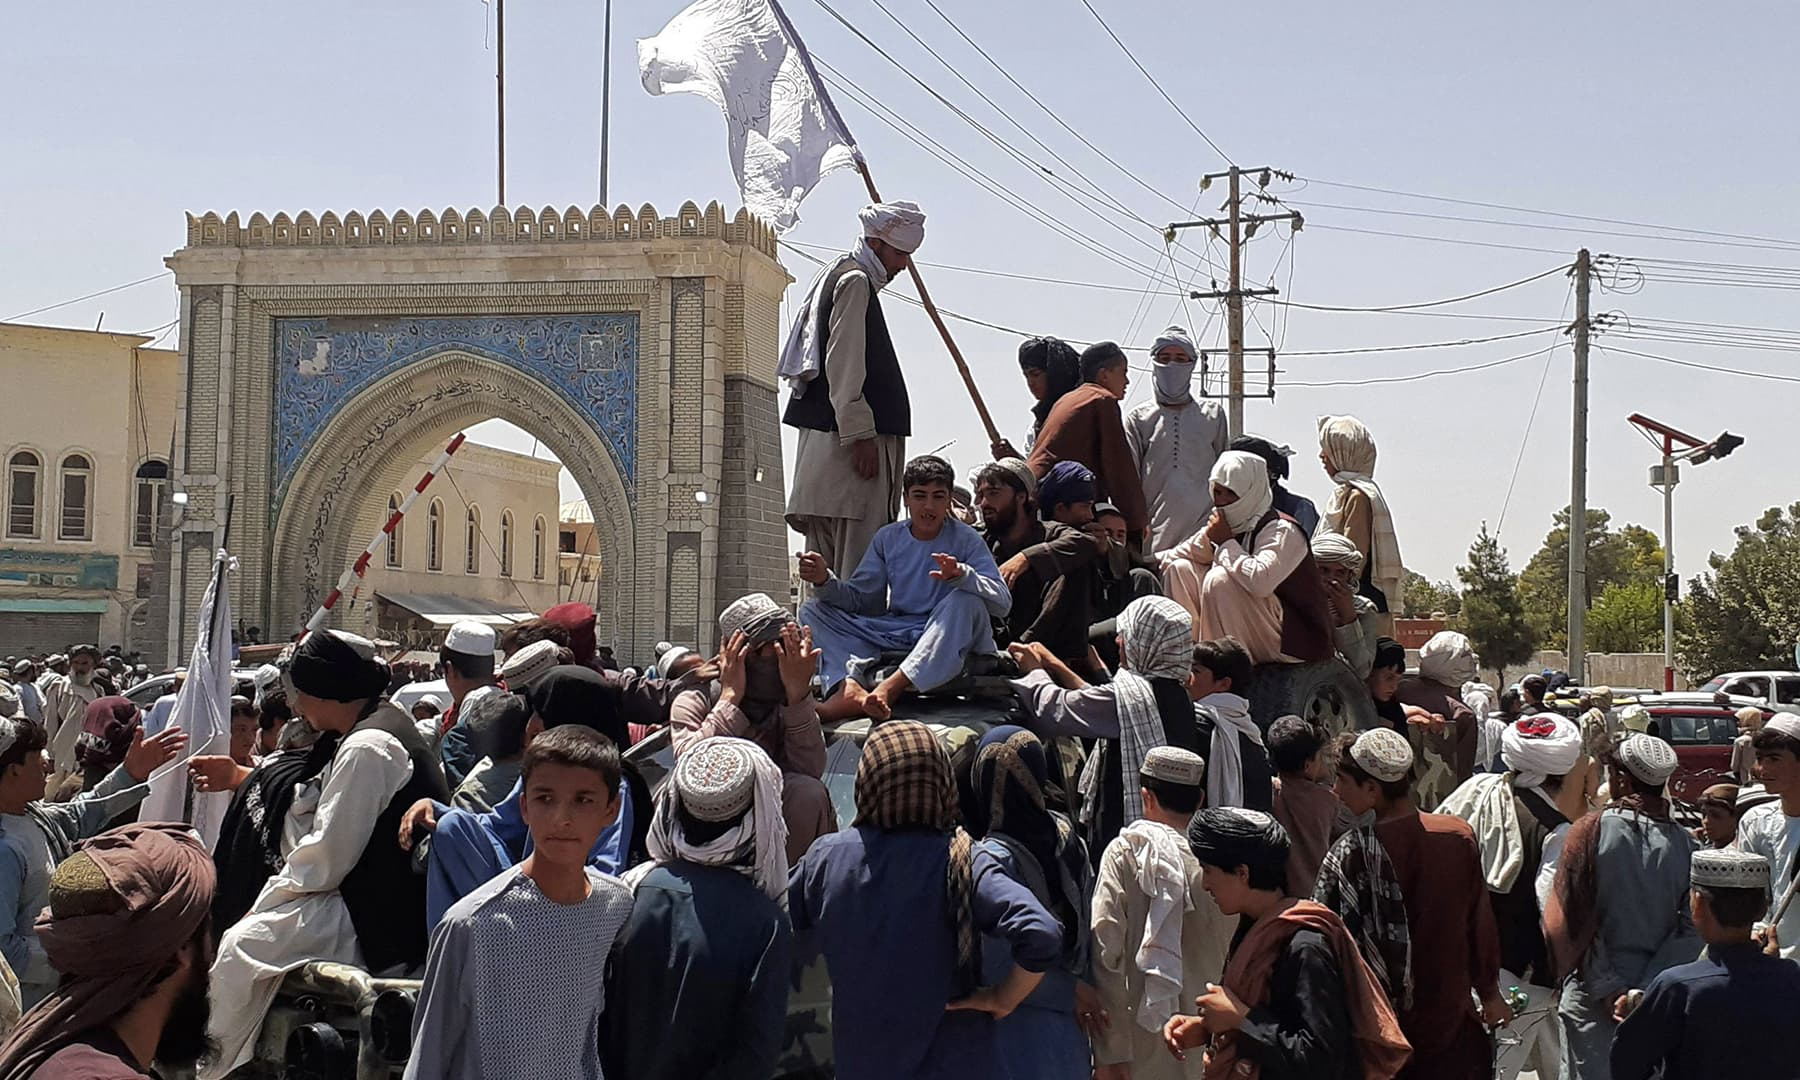 Taliban fighters stand on a vehicle along the roadside in Kandahar on August 13. — AFP